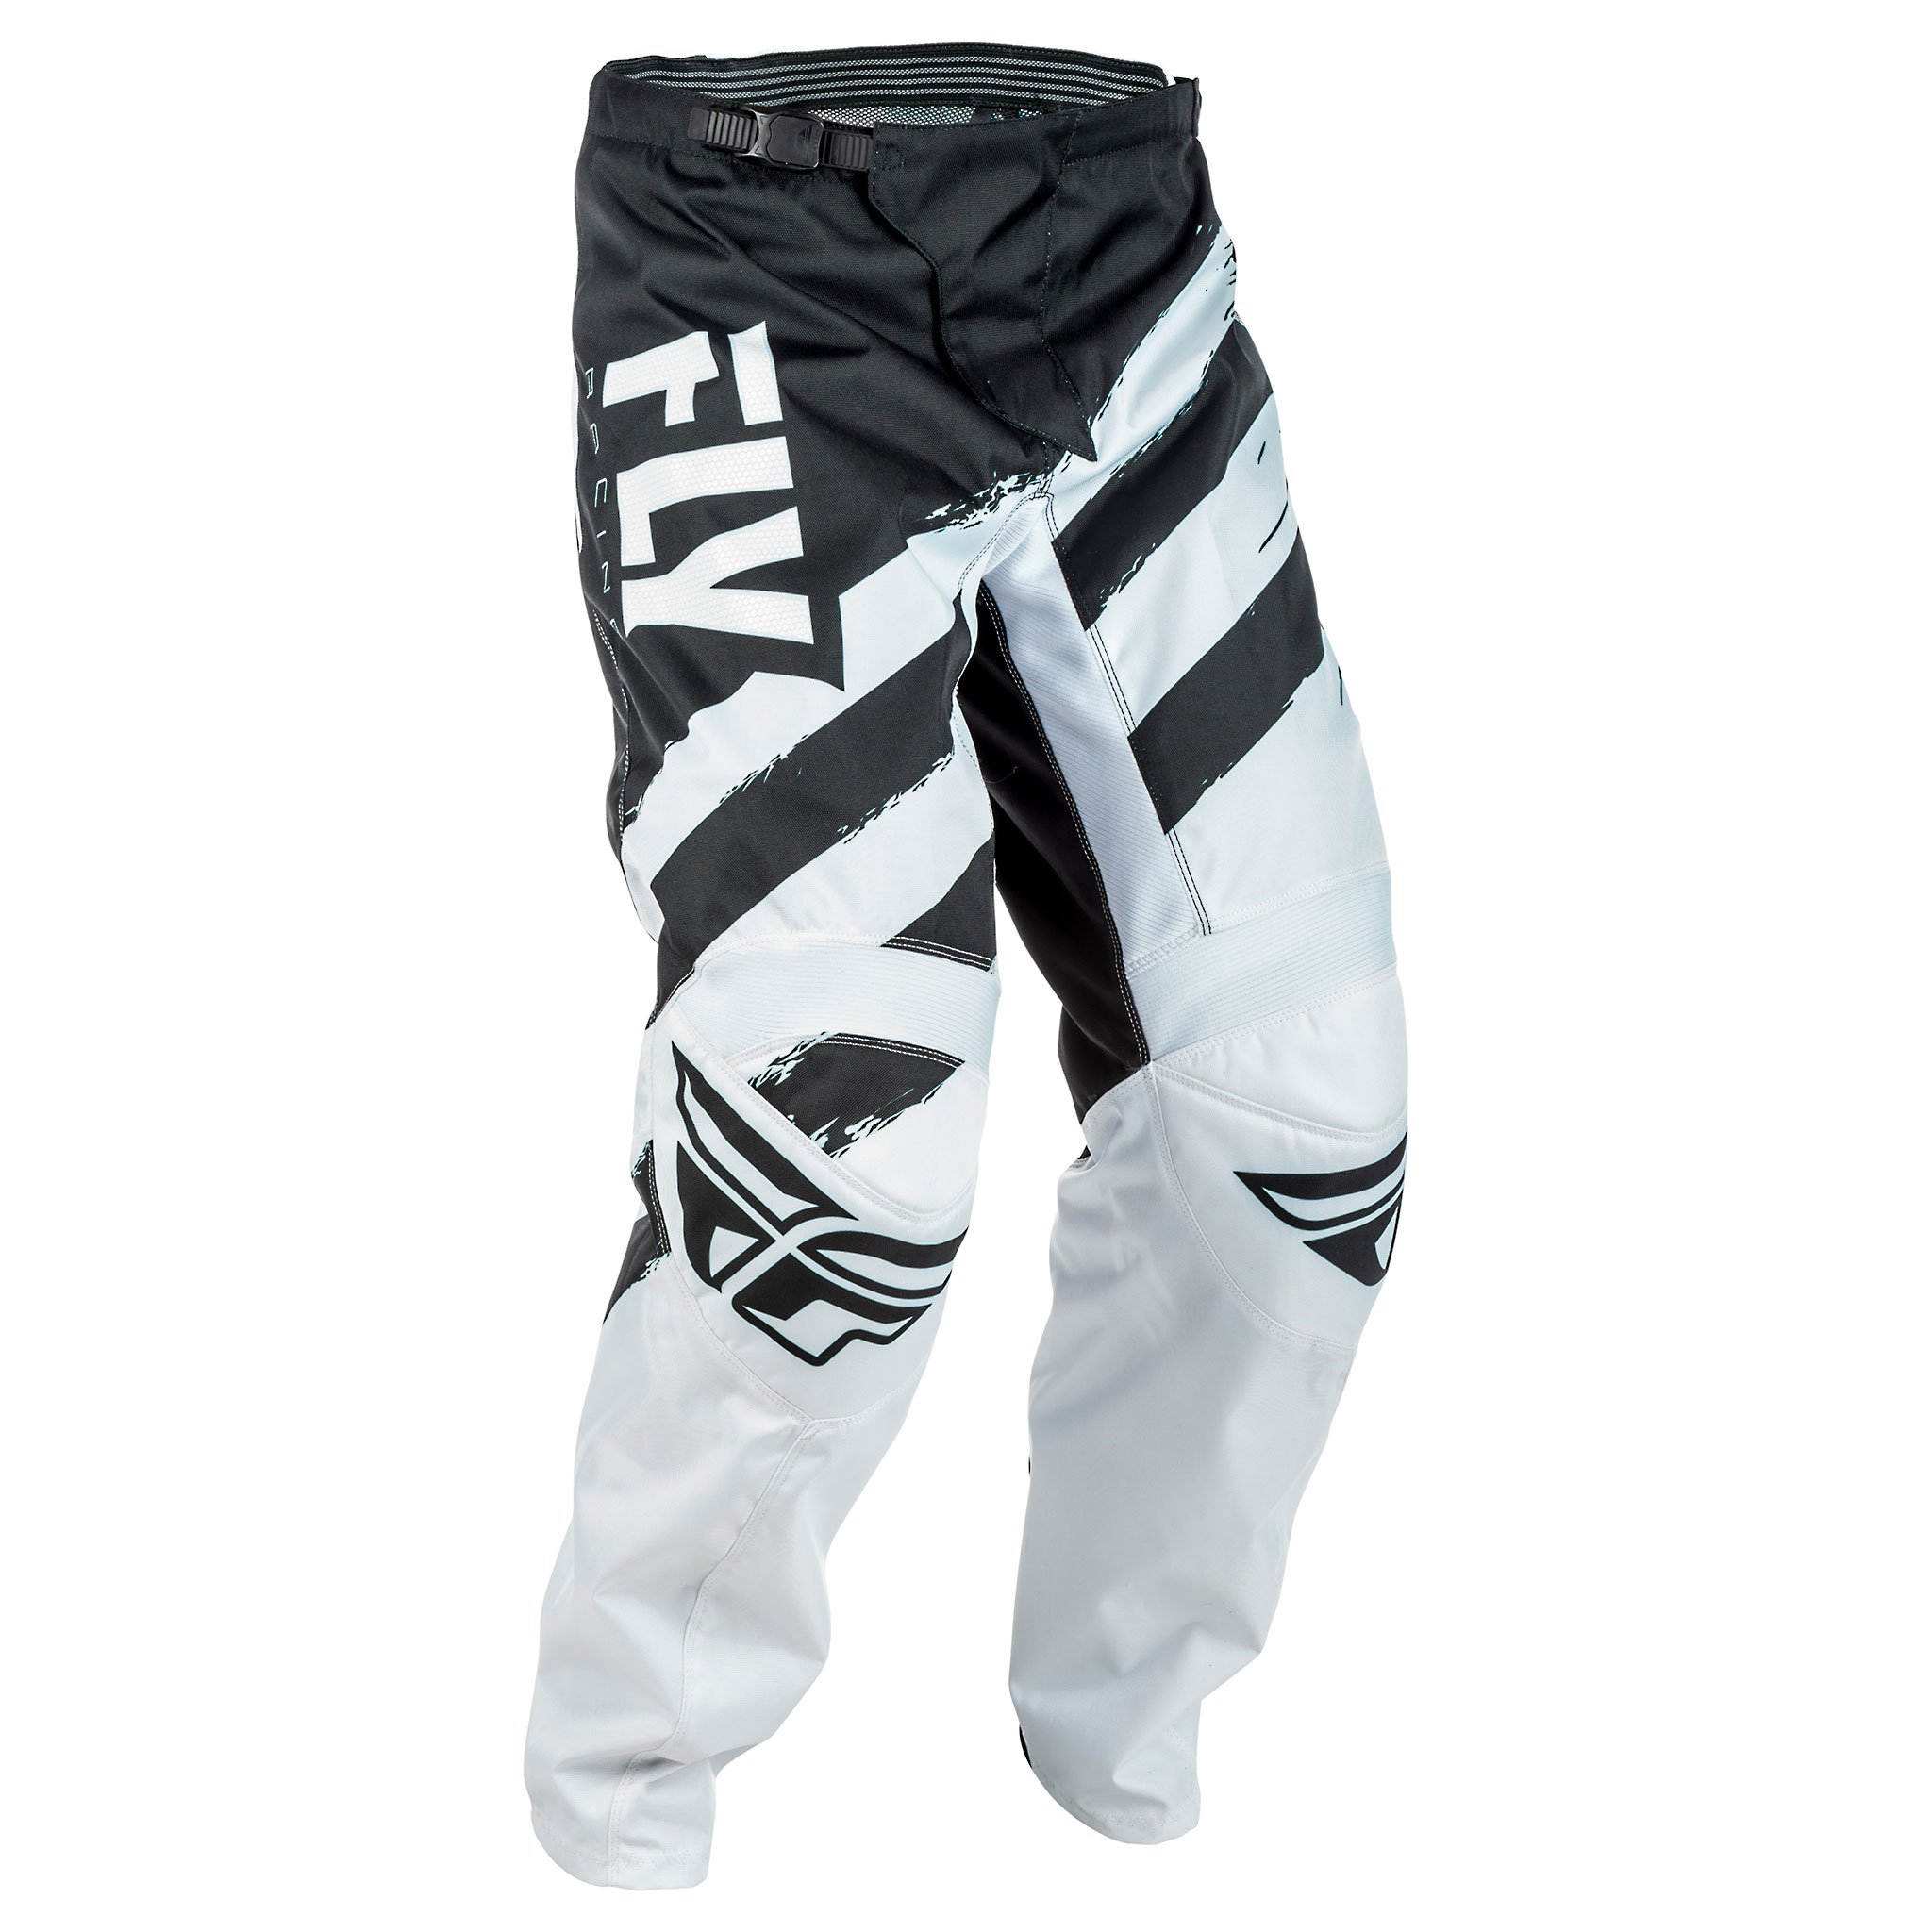 Fly Racing Men's Pants (Black/White, Size 26)